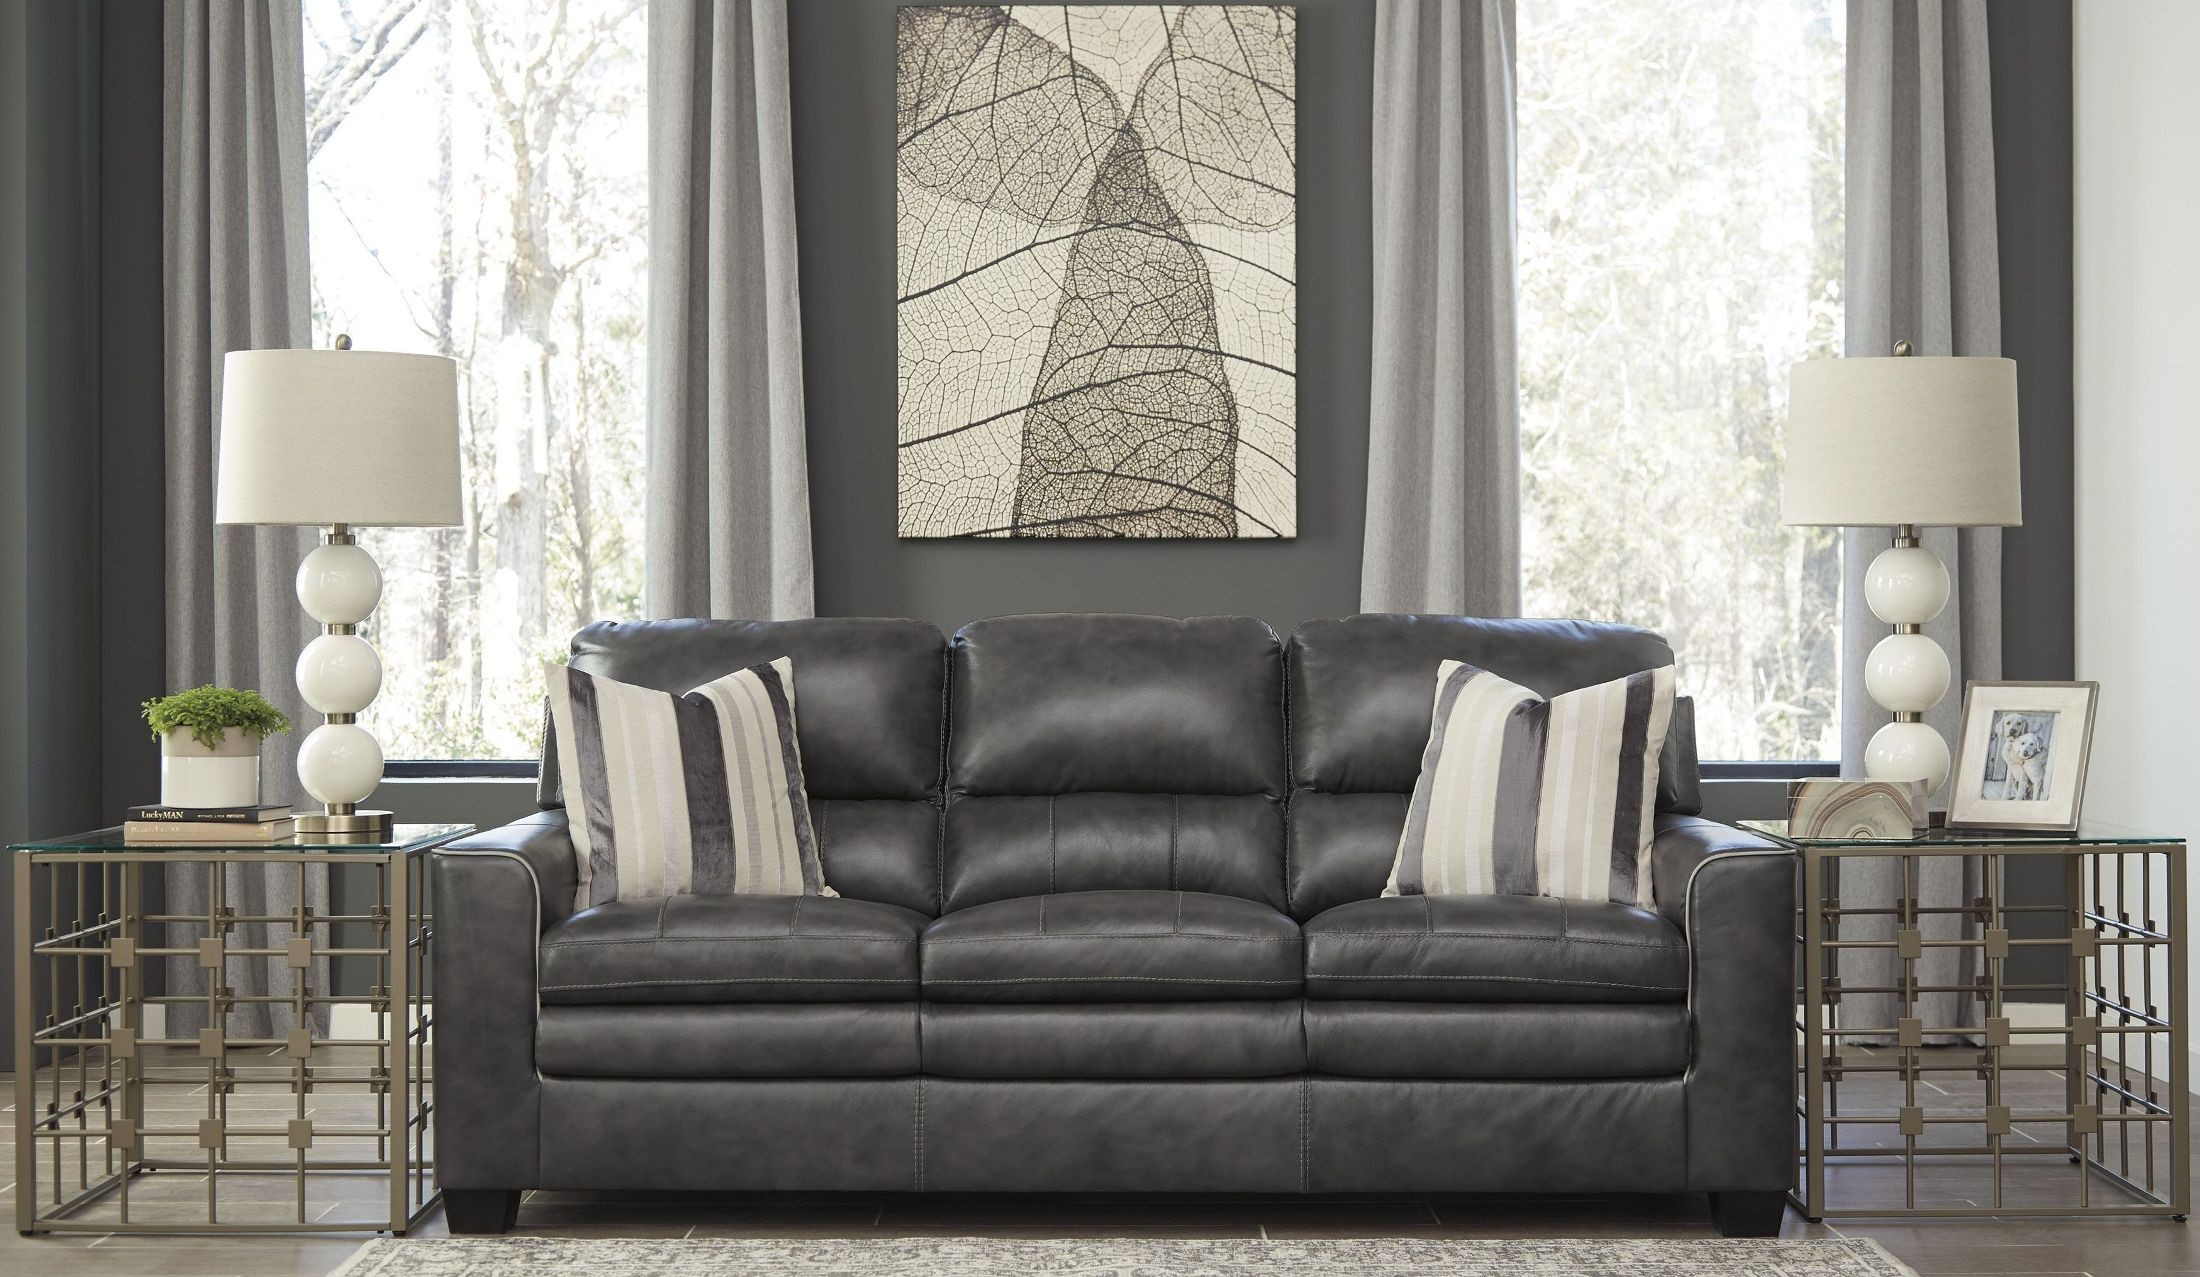 Gleason Charcoal Living Room Set From Ashley Coleman Furniture